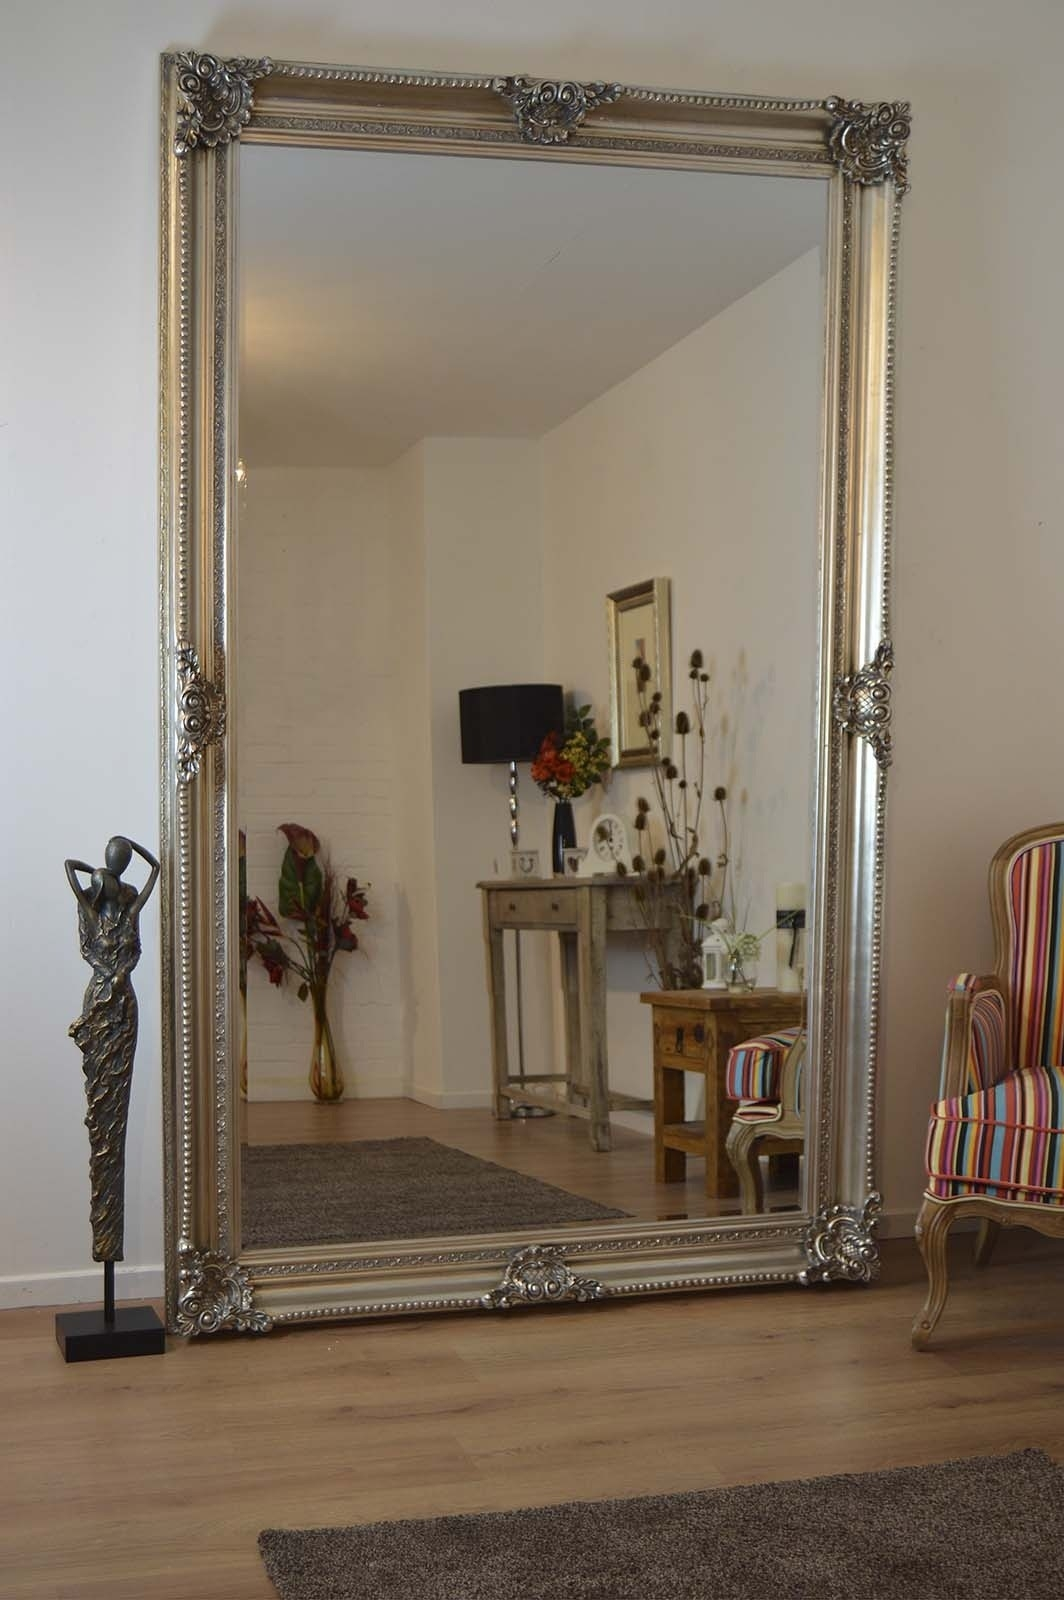 Classic Impression On Antique Wall Mirrors Vwho In Large Antique Wall Mirror (Image 5 of 15)